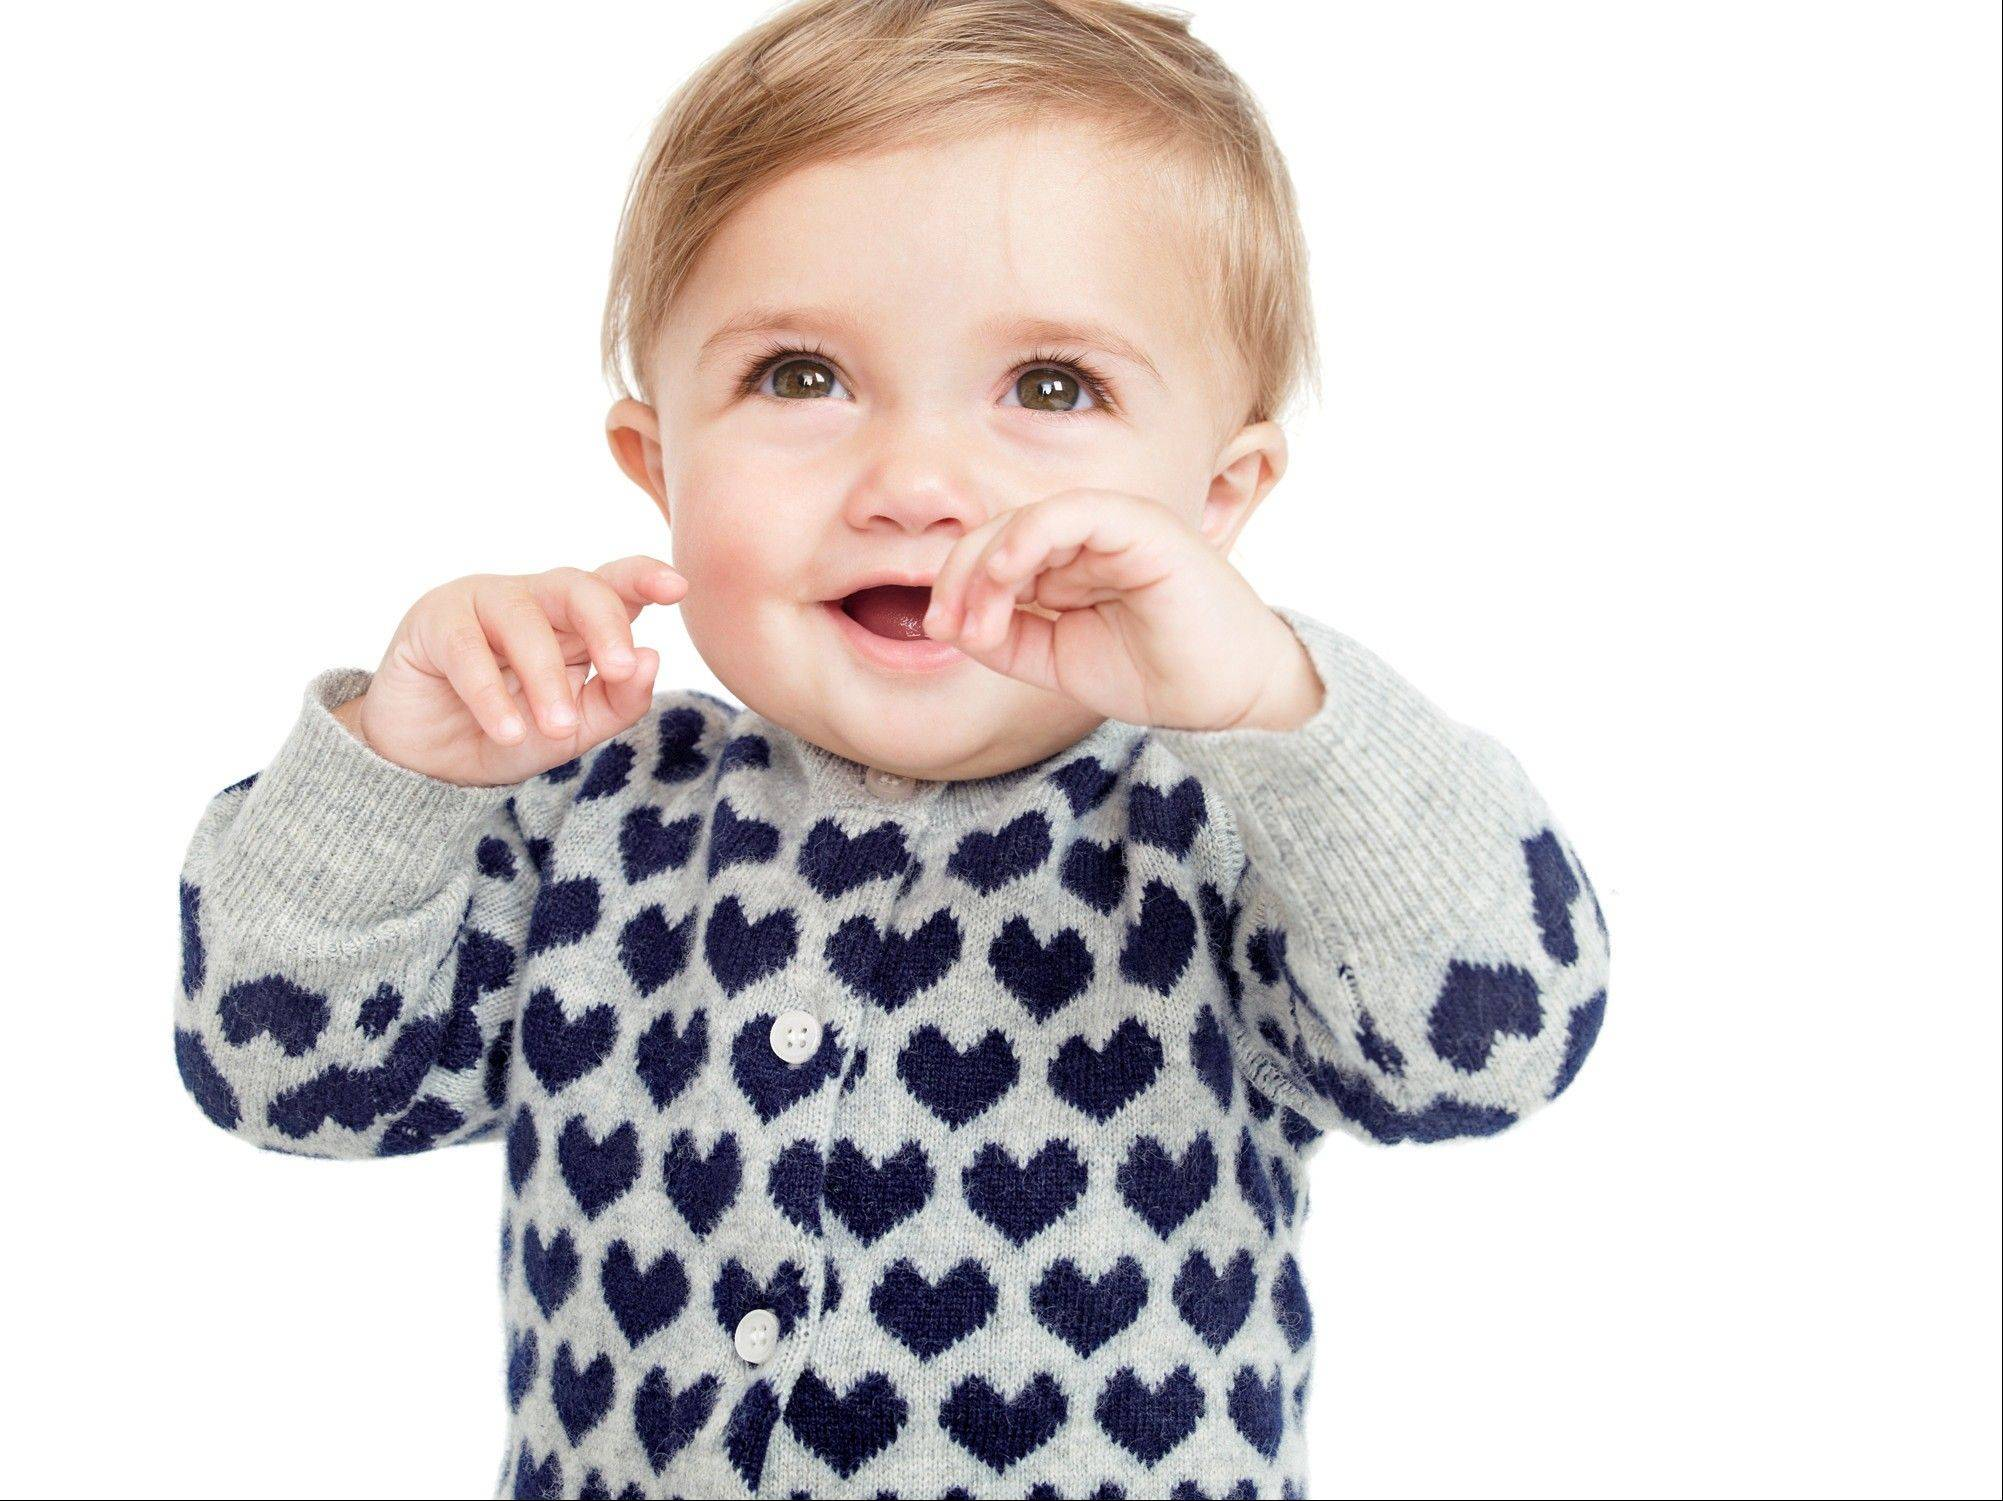 A gray cashmere sweater with blue hearts is just one option from J. Crew's new baby collection.